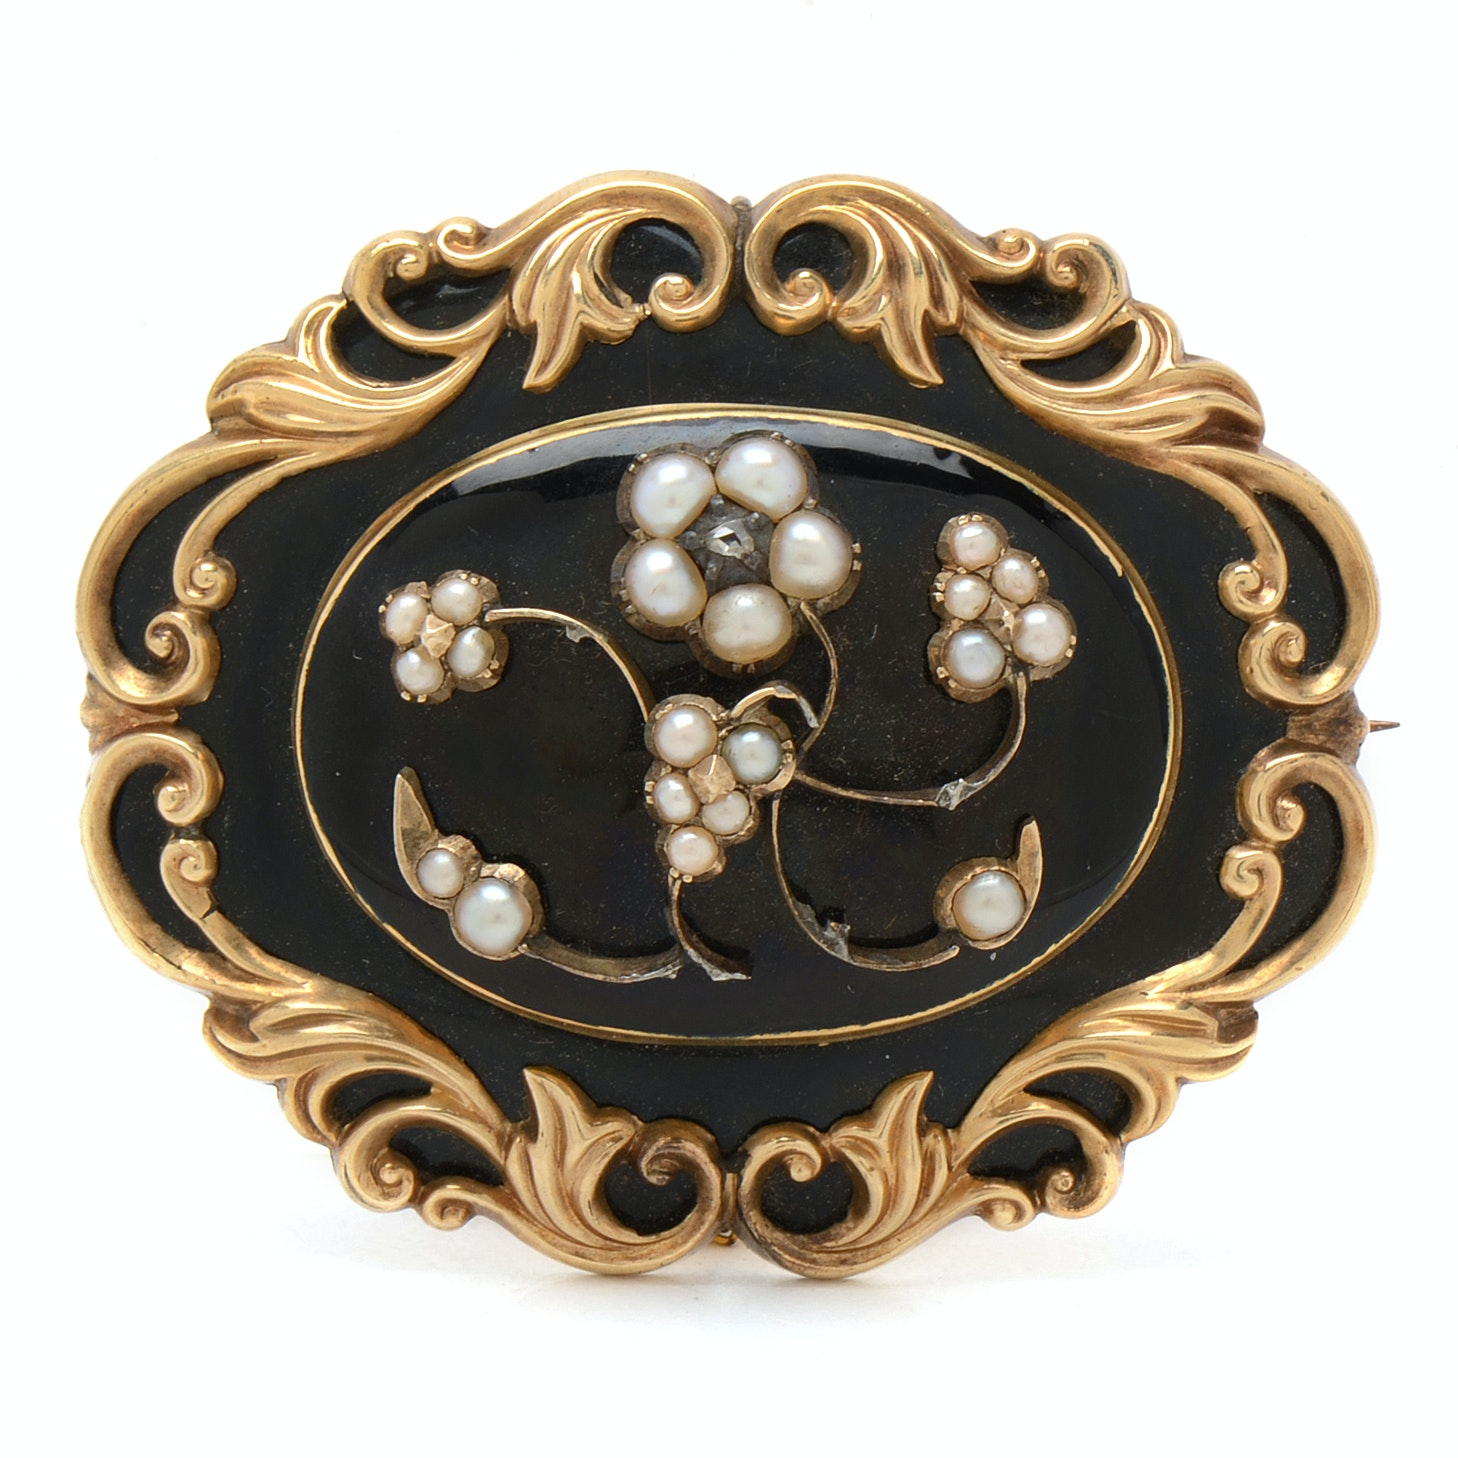 Antique Gold-Filled Victorian Mourning Brooch Pendant